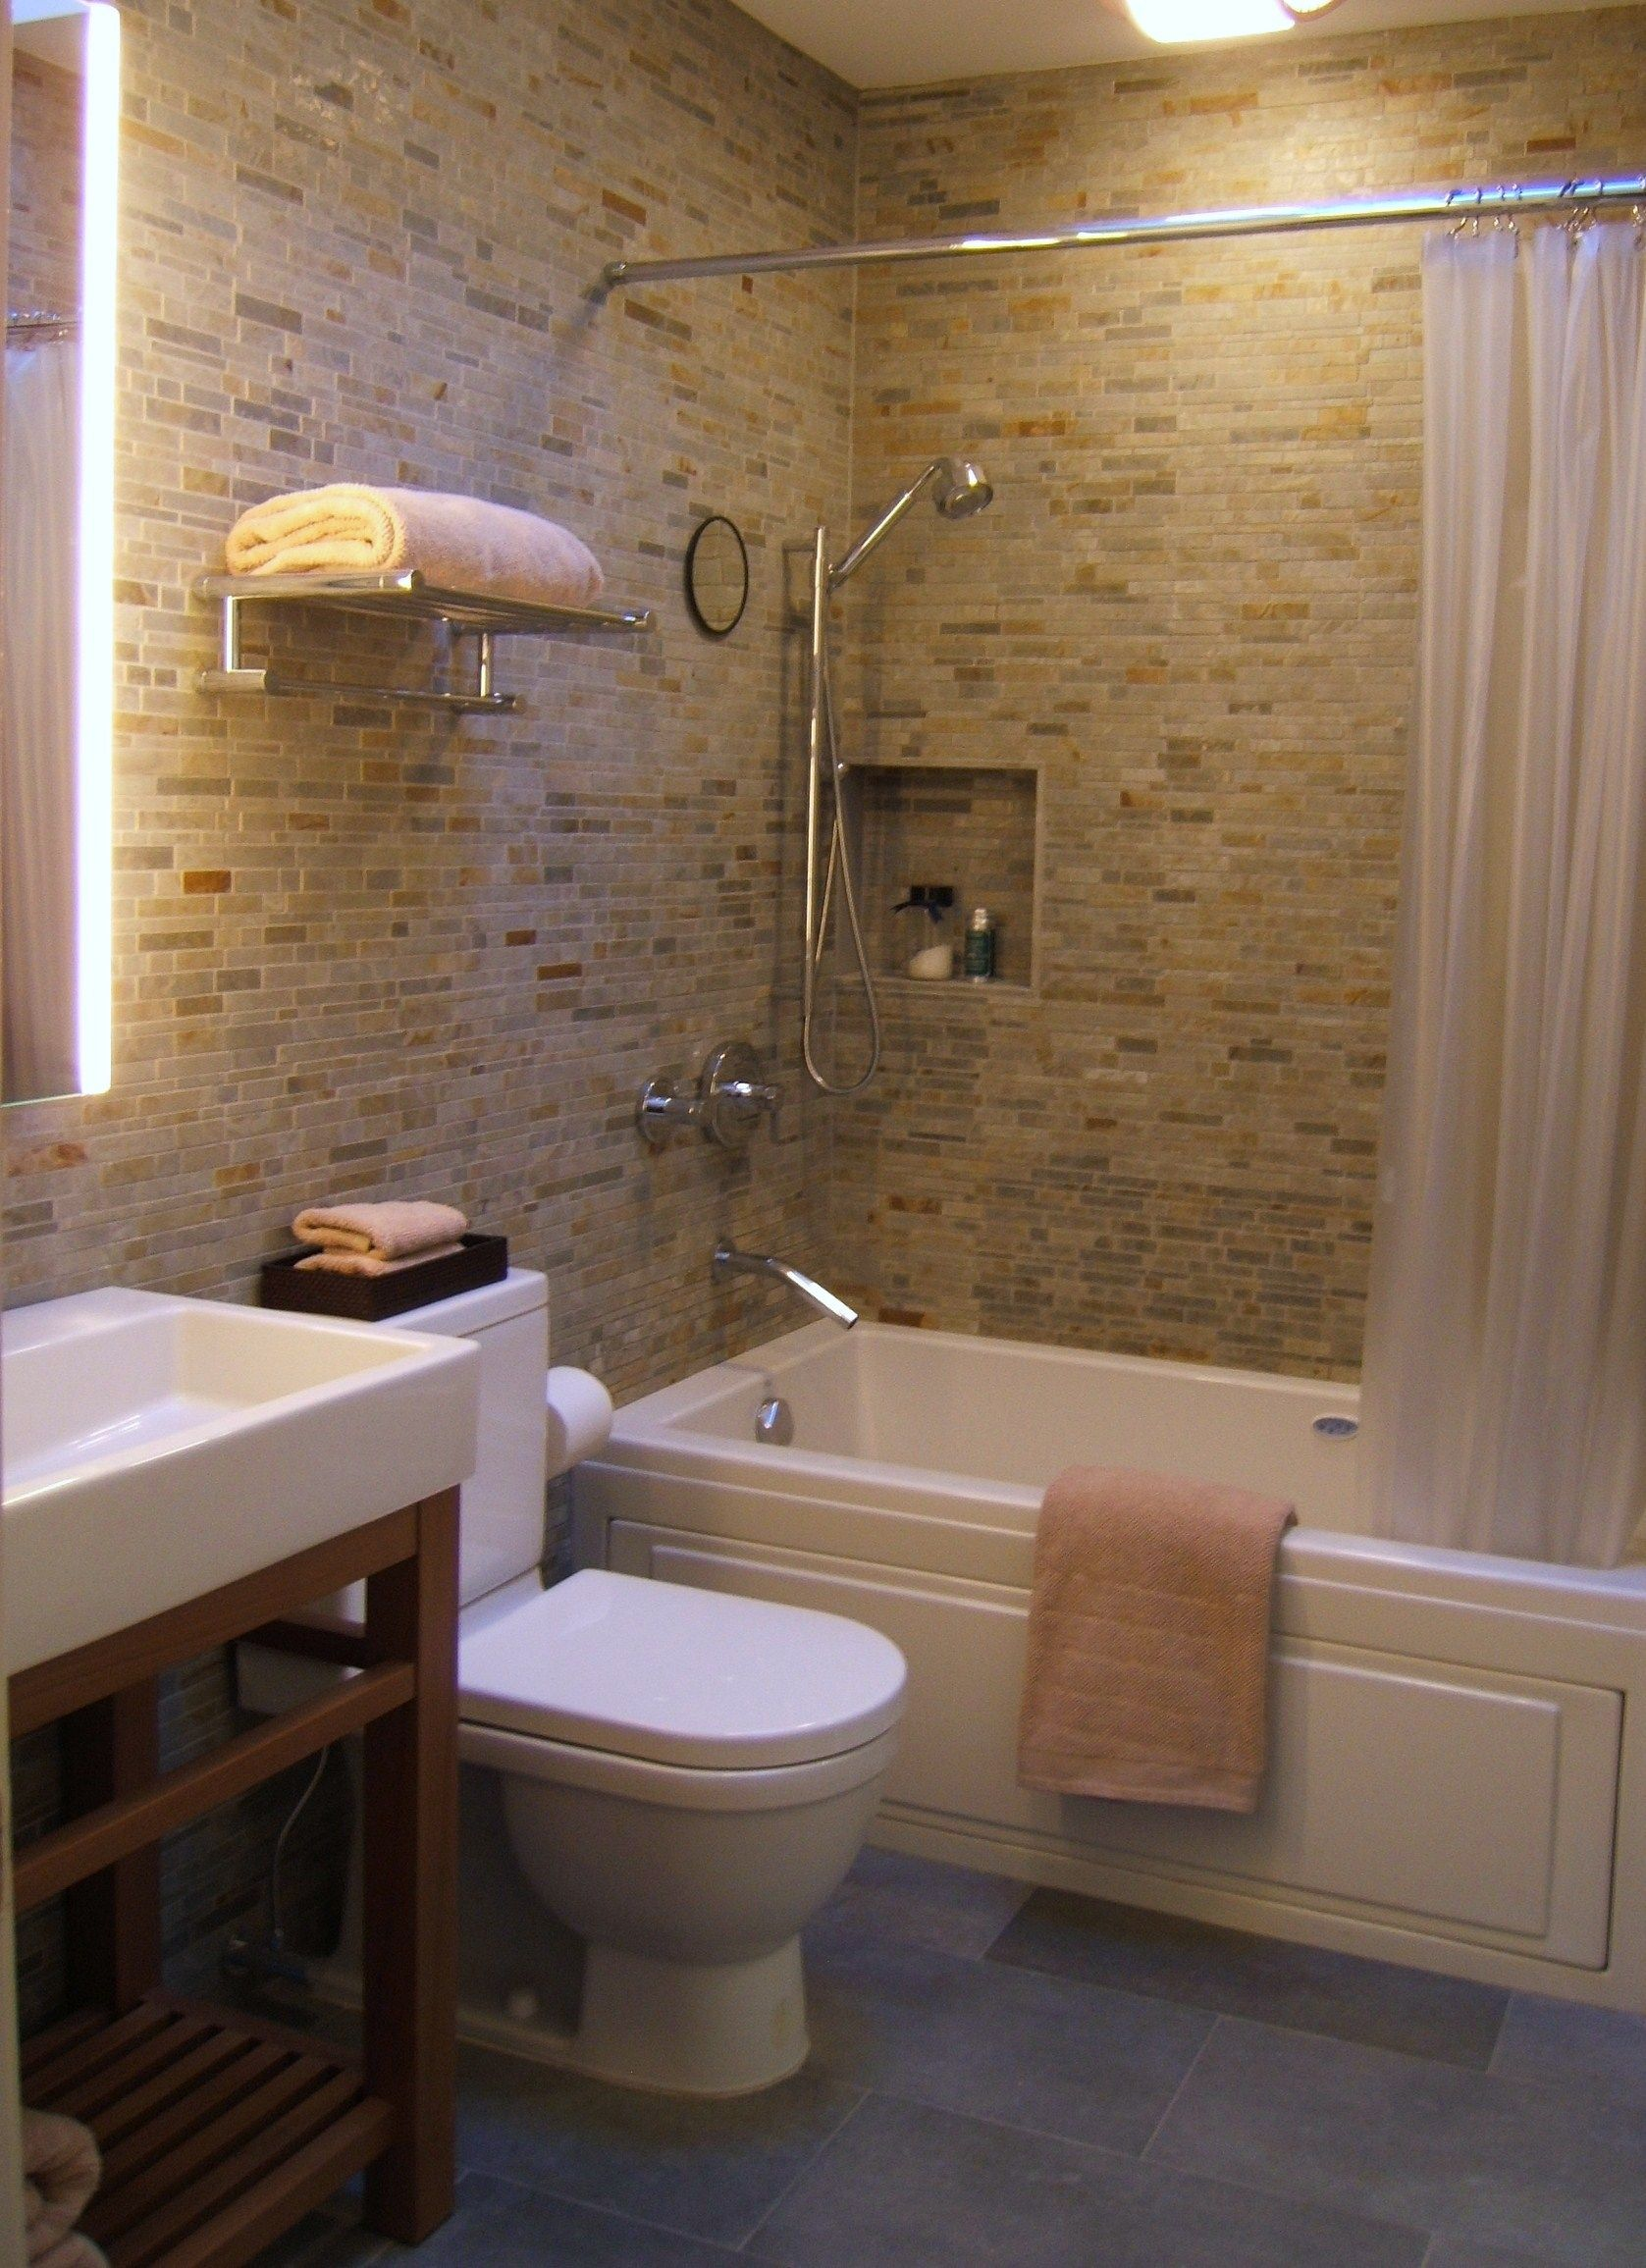 Small bathroom designs south africa small bath for Small bathroom remodel designs